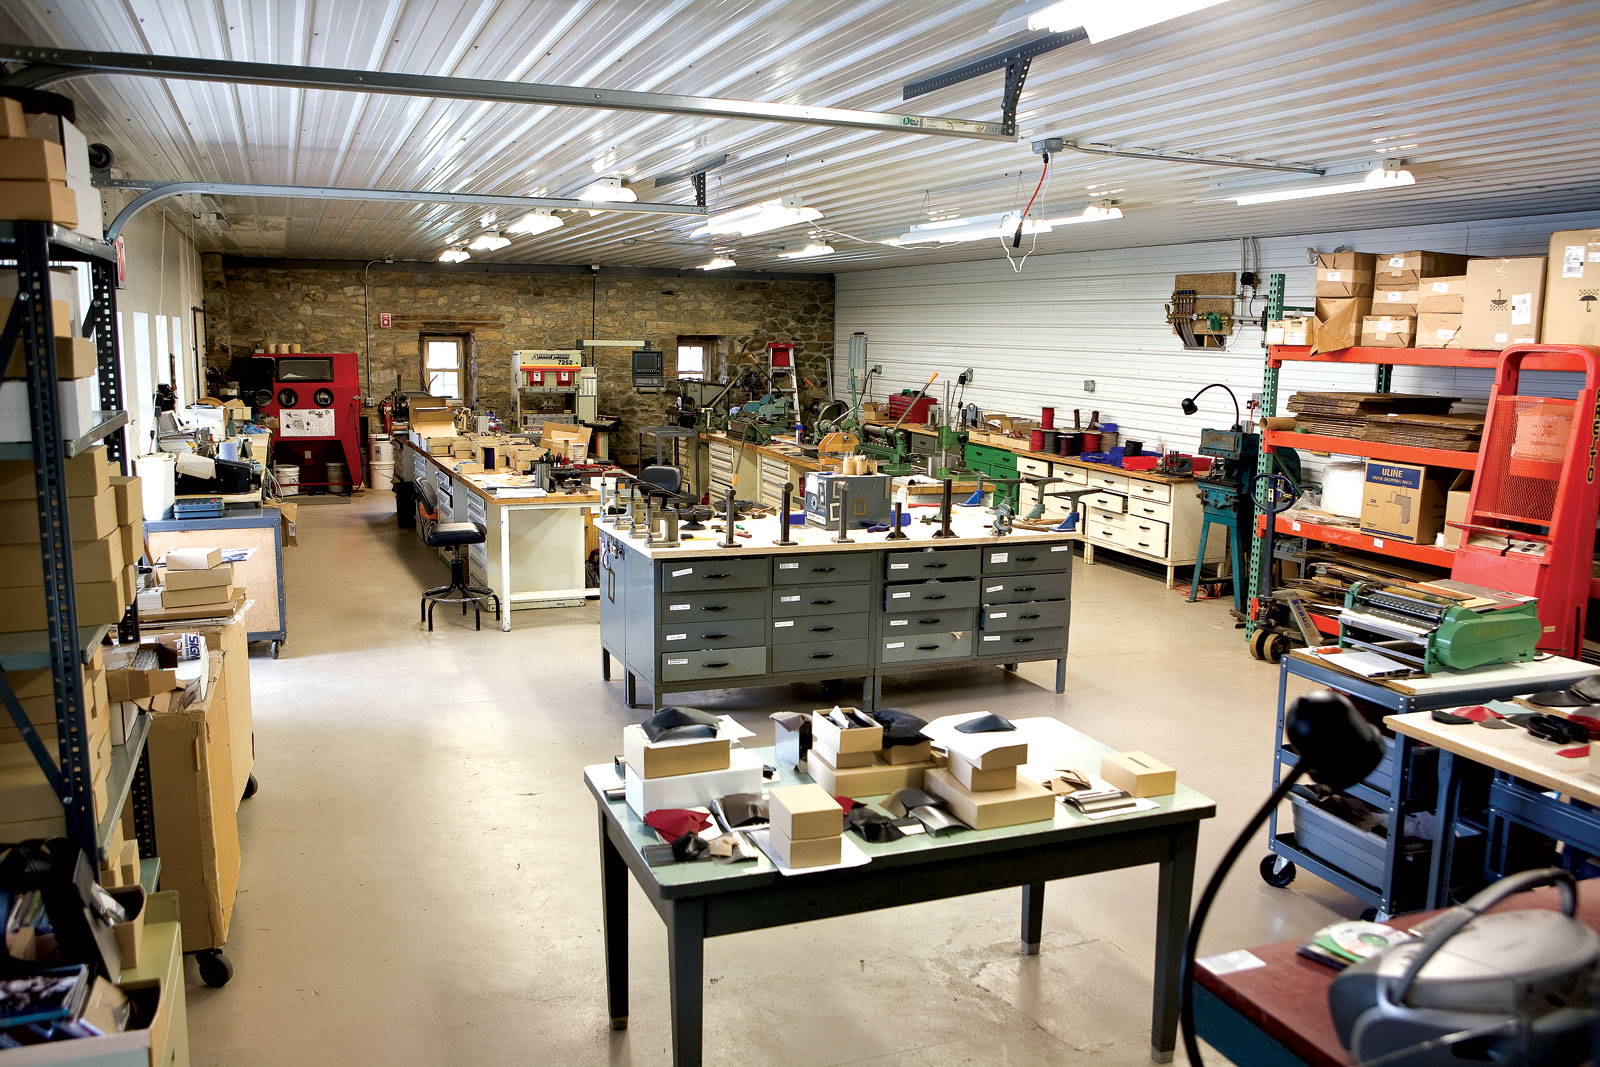 WENDY STEVENS STUDIO.   After the studio fire in 2004, the facility was redesigned and rebuilt on the main level of the stone barn on her eight-acre farm property. In the foreground is a packing table with finished pieces. To the right is the leather cutting table with a gluing machine. Directly behind the packing table is the stake bench where the pieces are assembled. Against the wall are the orange pallet racks where sheet metal is stored with a hydraulic lift. In the background are the tool benches with slip rolls, notchers, shears, a hand press brake and a hydraulic brake, a sand blast cabinet and deburring wheels.  Photograph by Kate Lacey